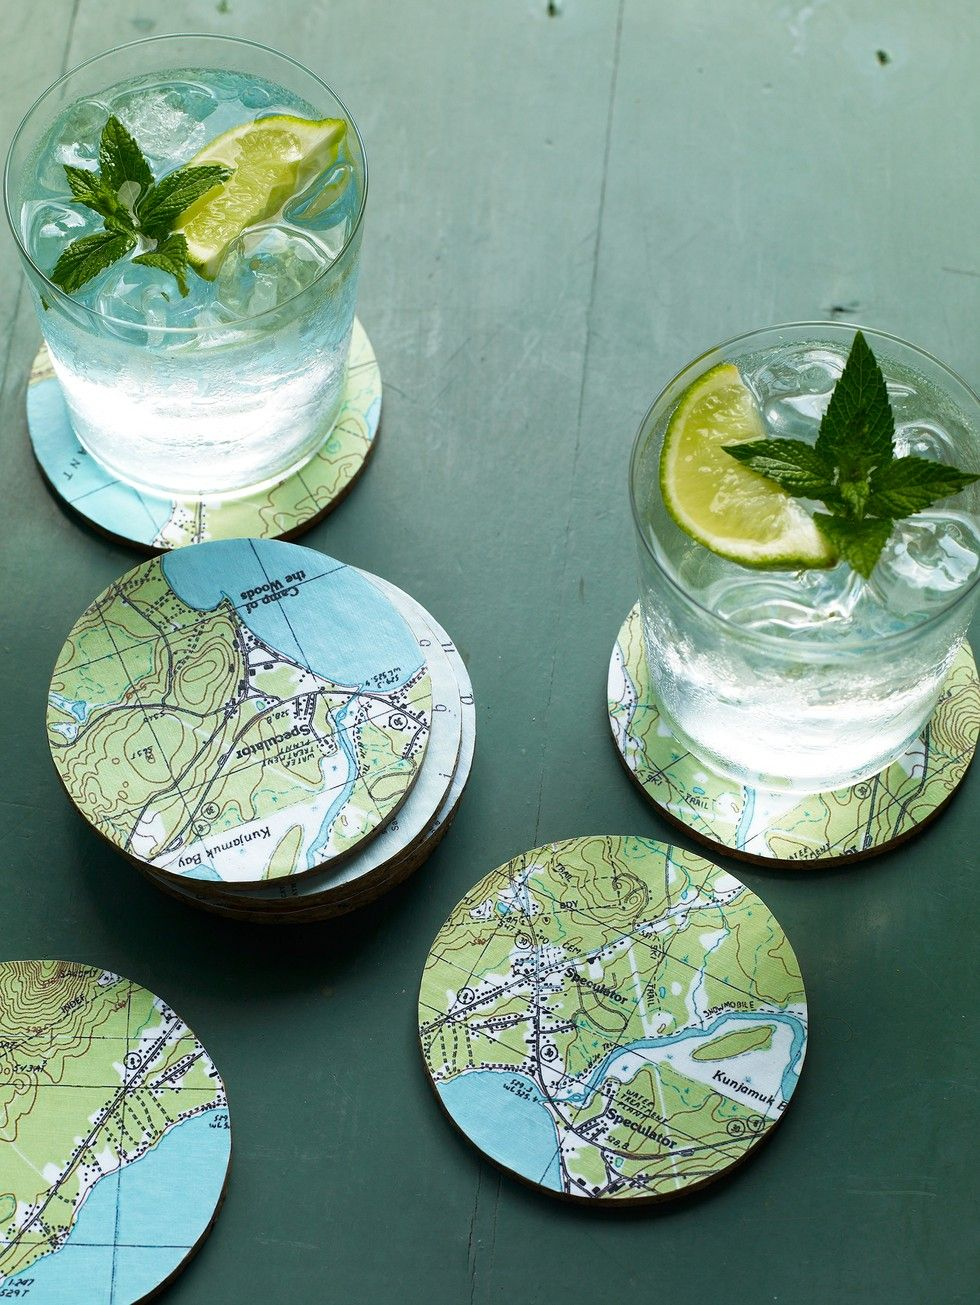 Don't stash away or discard maps from your favorite vacation spots. Use them to make these handy coasters and you'll be reminded of that special destination every time you reach for one. VIA @ms_living